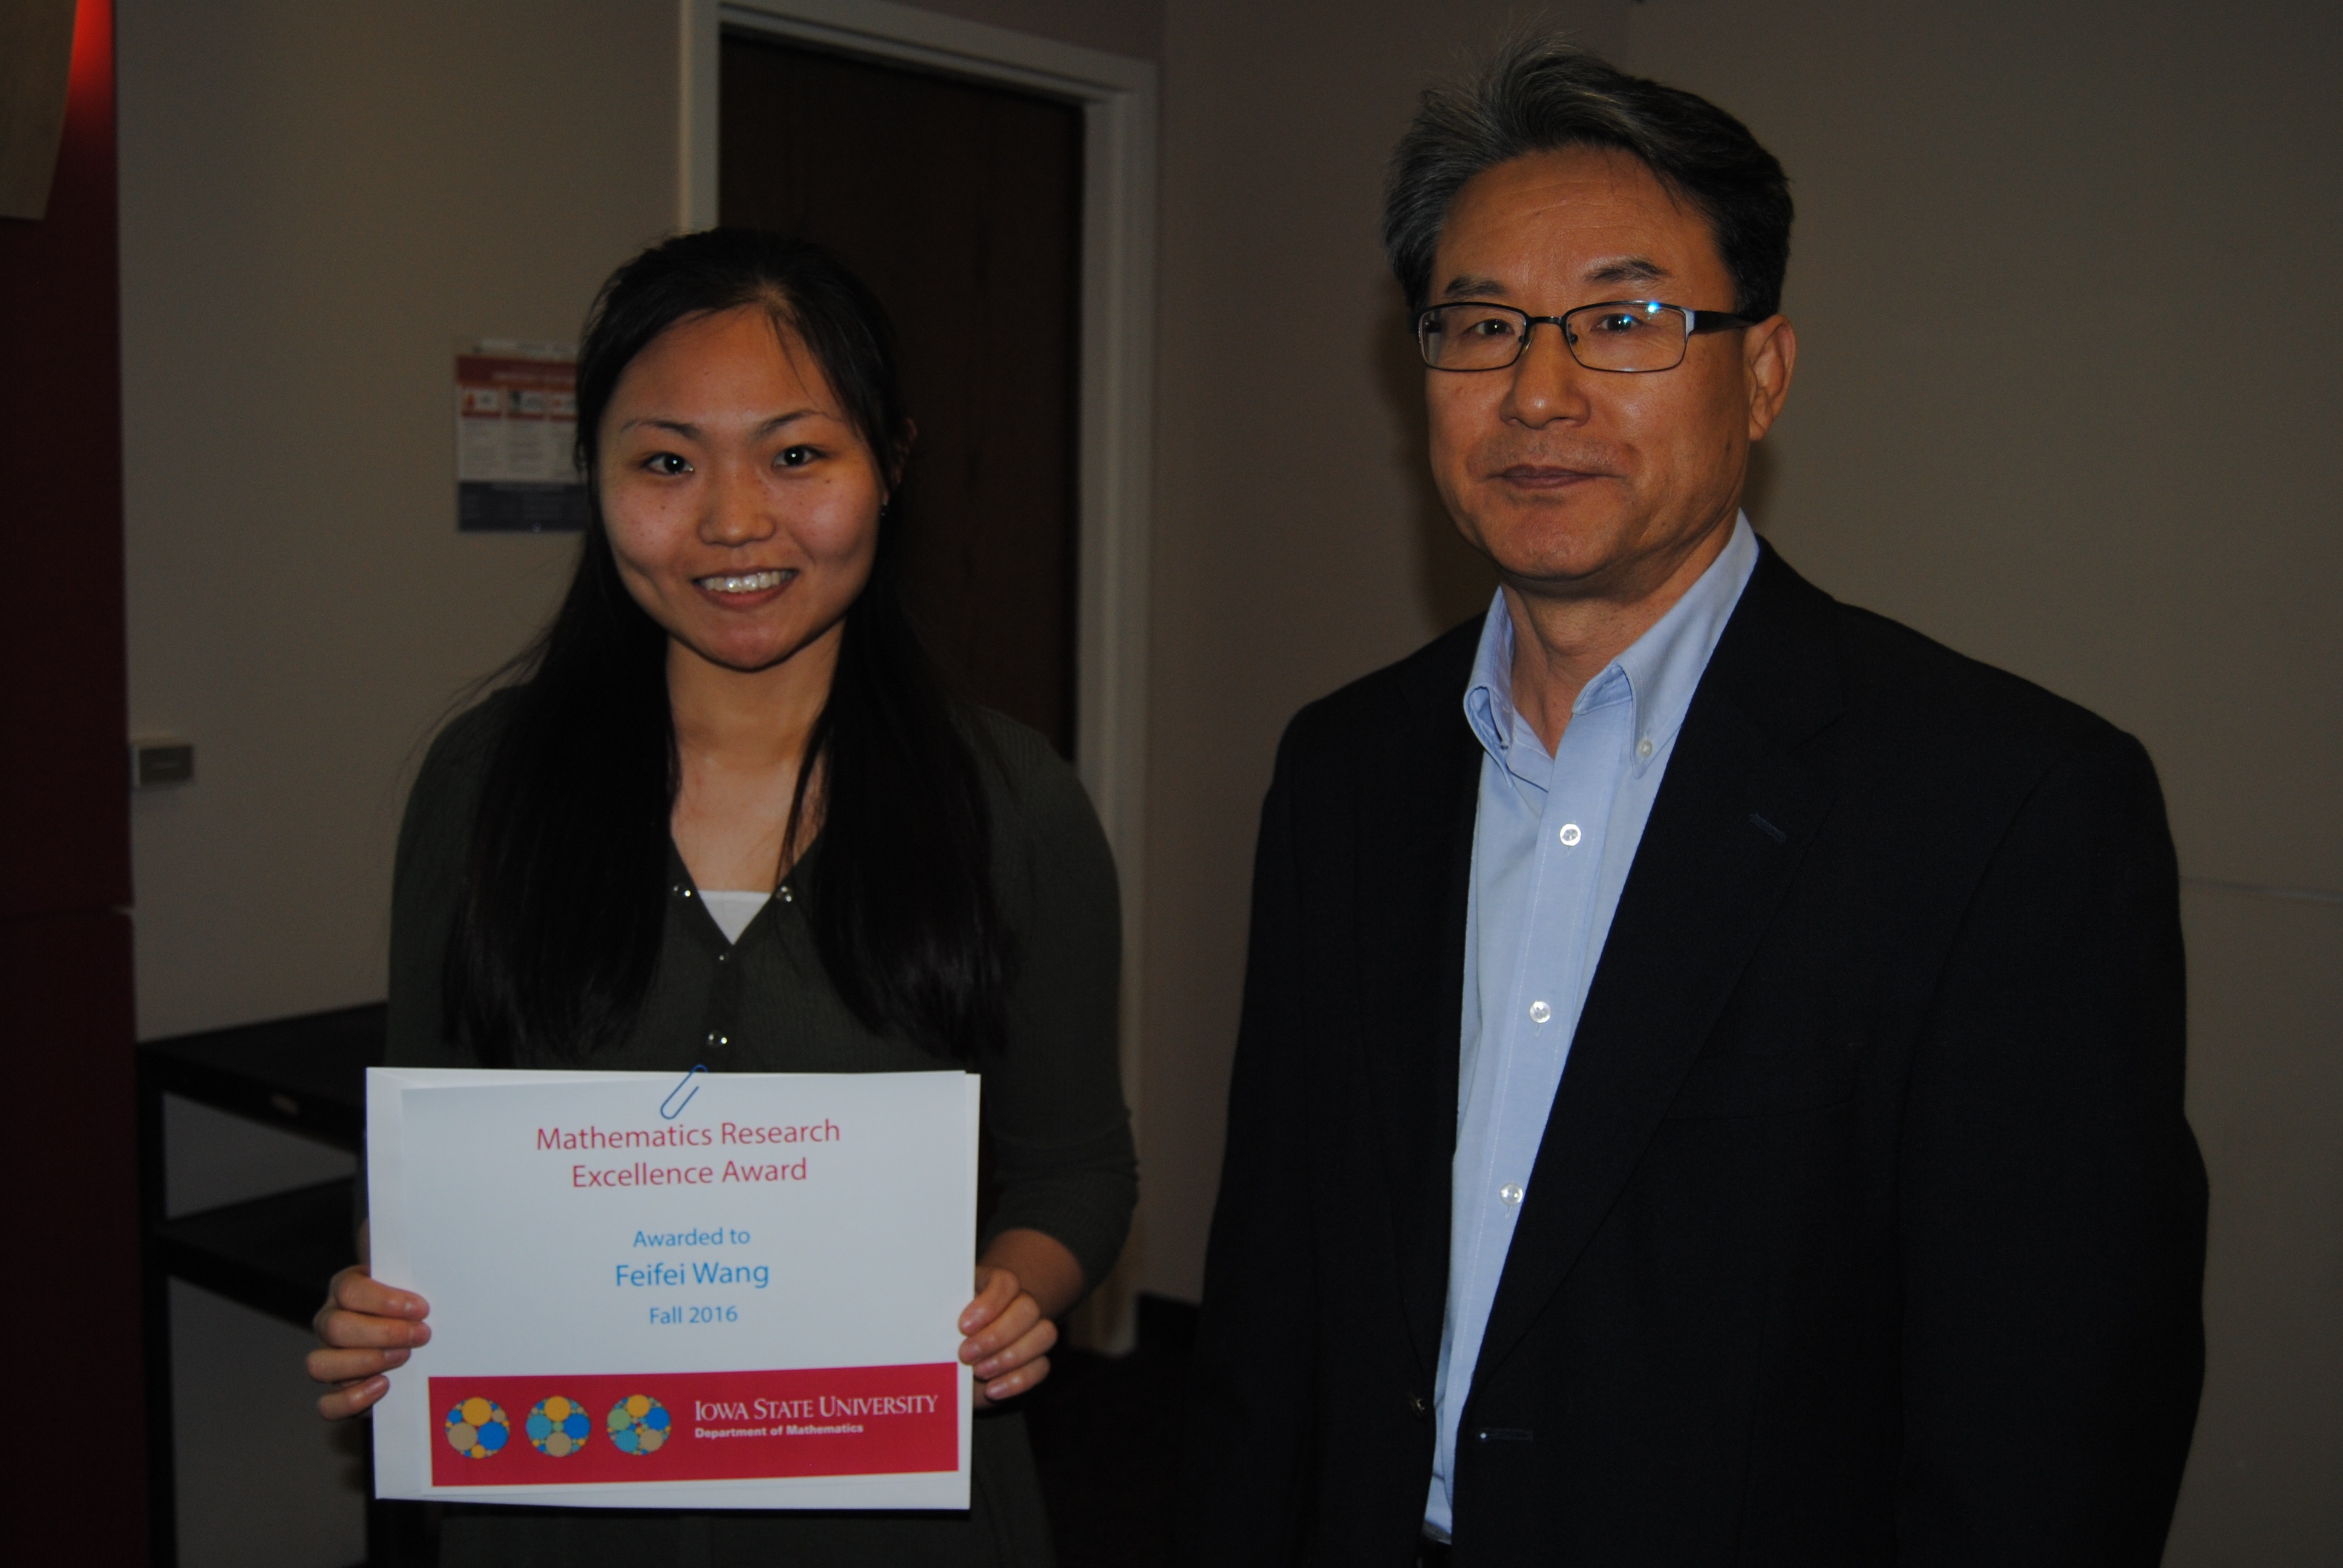 Sung-Yell Song, associate professor of mathematics presents graduate student Feifei Wang with a certificate for the Mathematics Research Excellence Award.